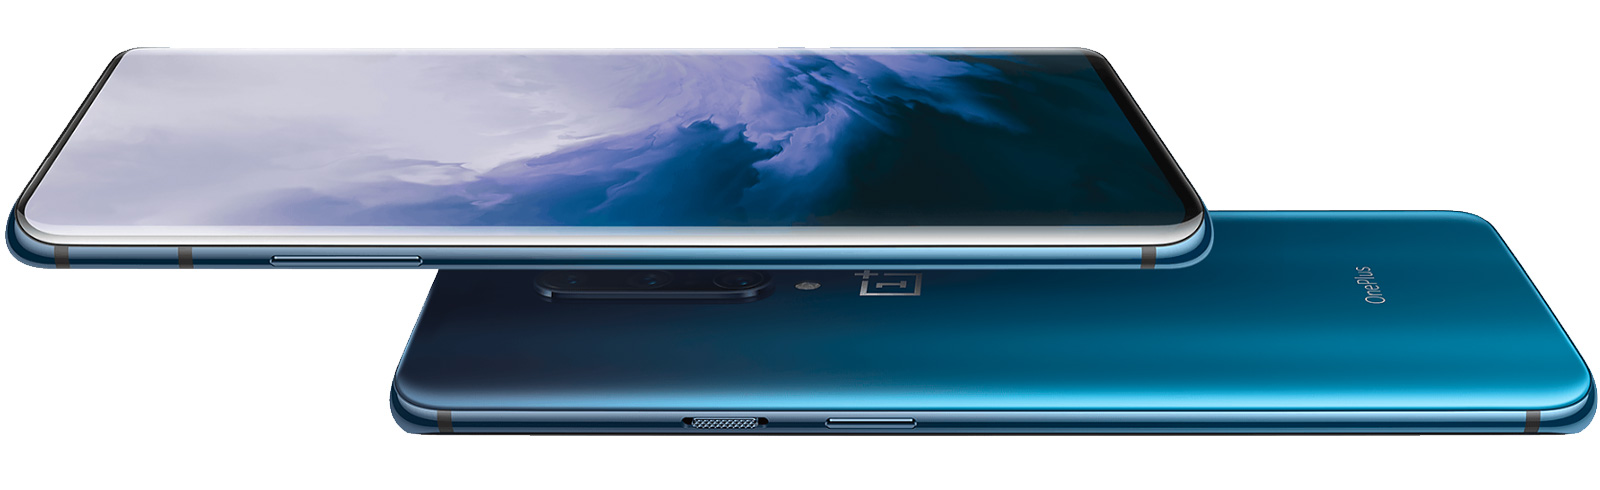 Our in-depth OnePlus 7 Pro review is ready